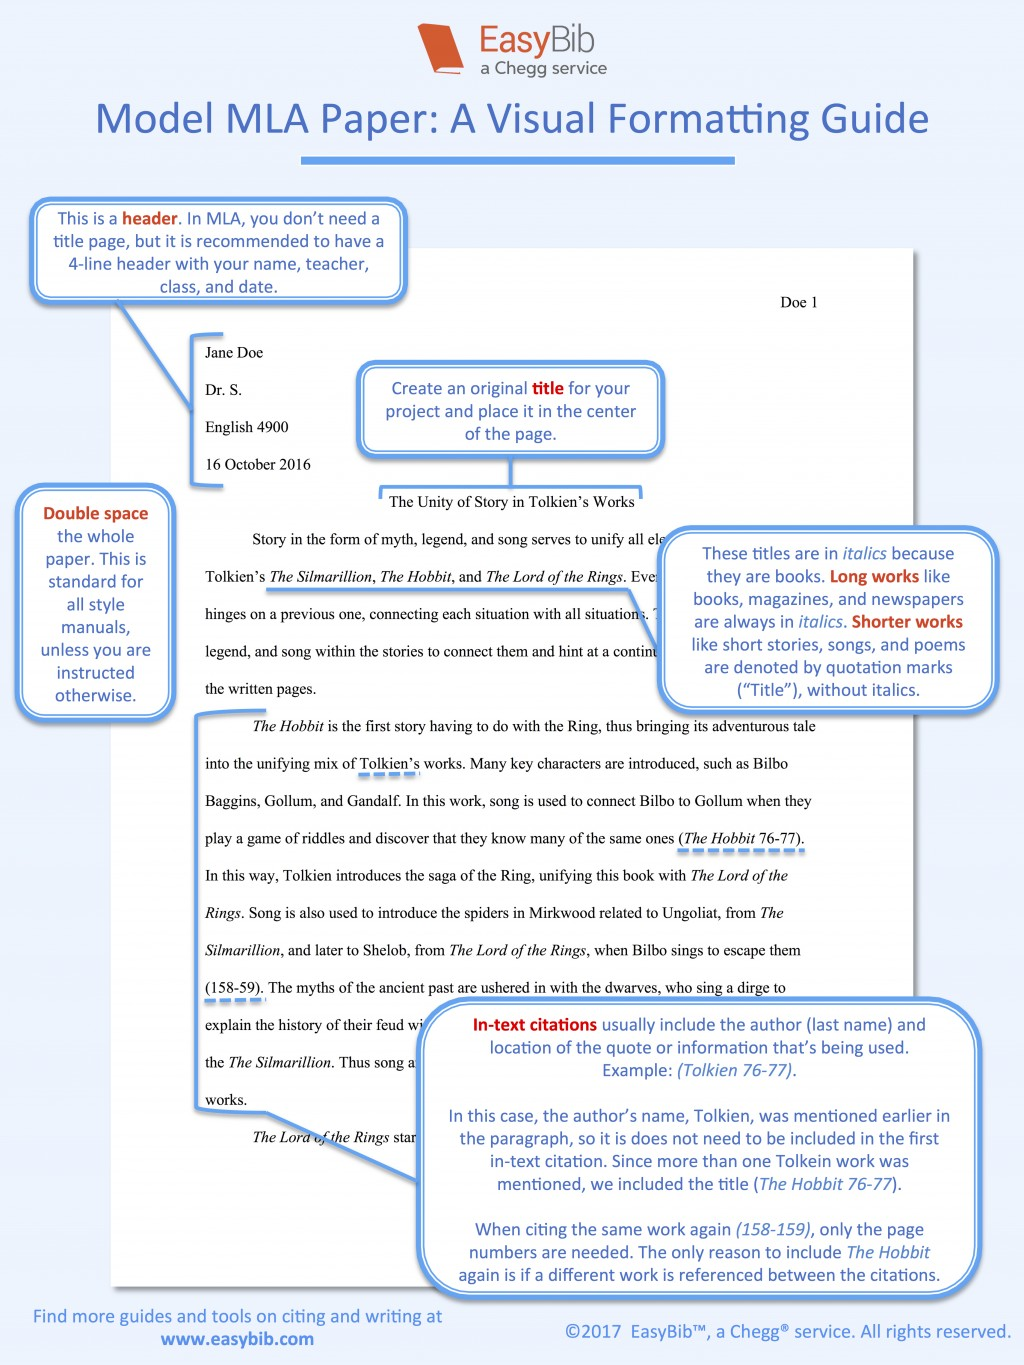 002 Research Paper Model Mla Example Of Using Fascinating Style Writing A Outline Large